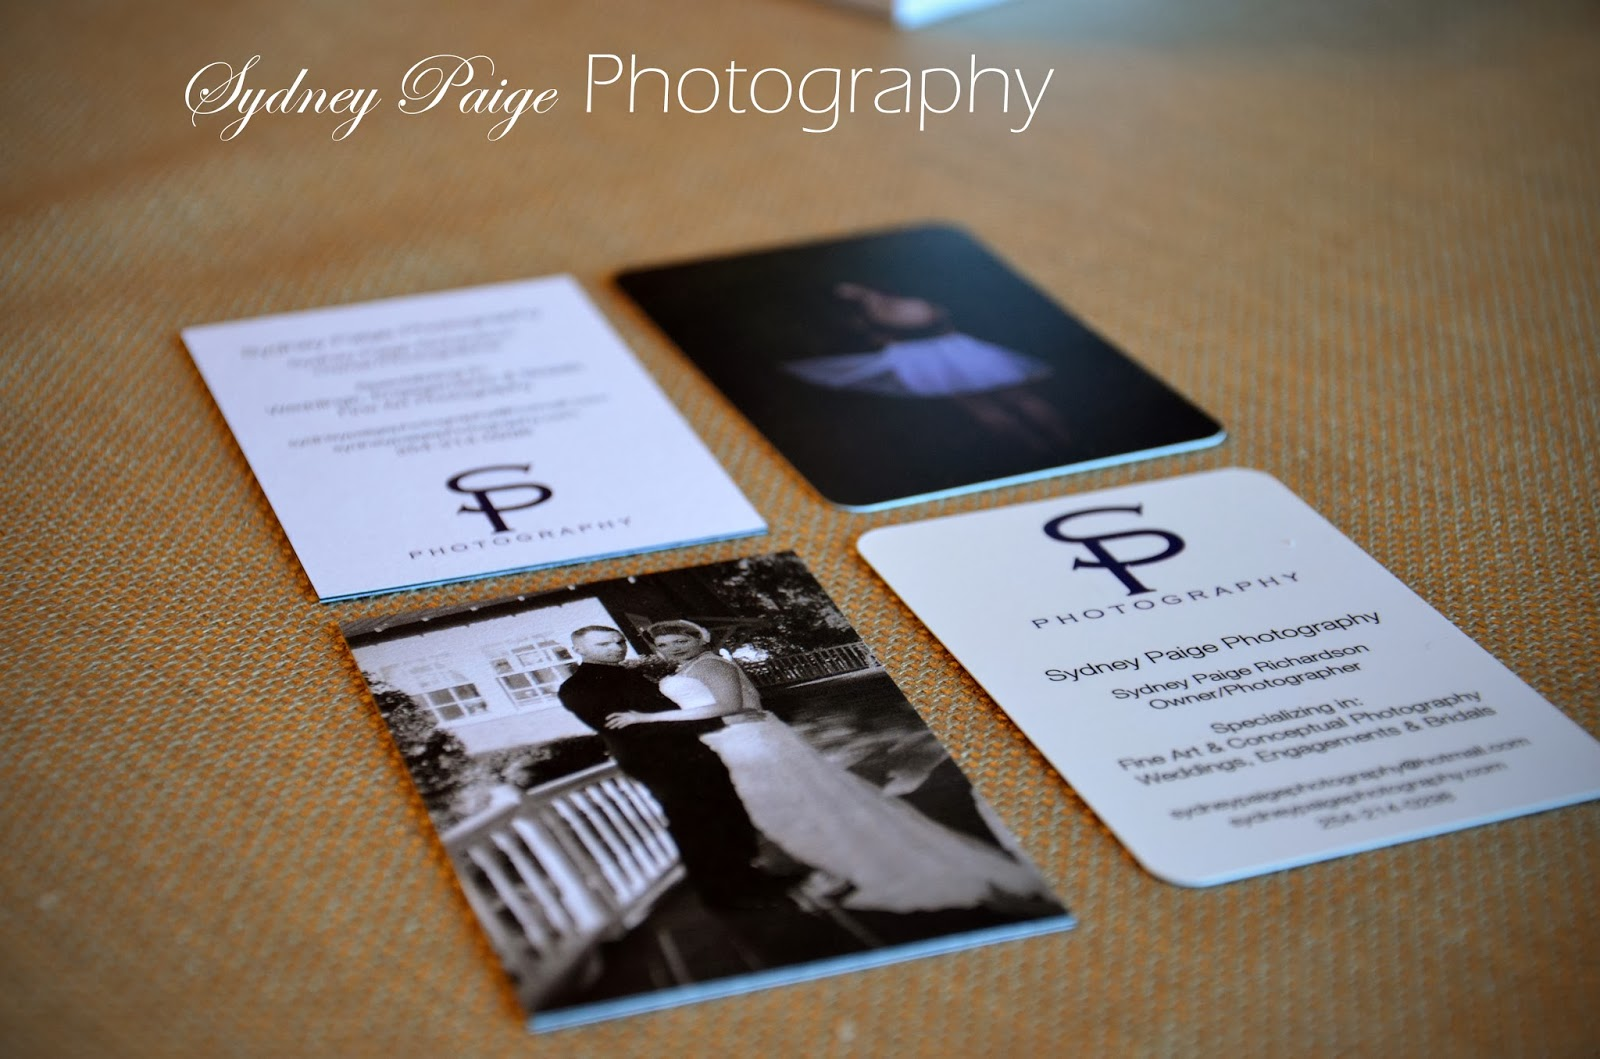 Sydney paige photography blog review business cards moo the wedding photo business card is their luxe edition and the rounded corners are their standard business cards they both are very thick but the round reheart